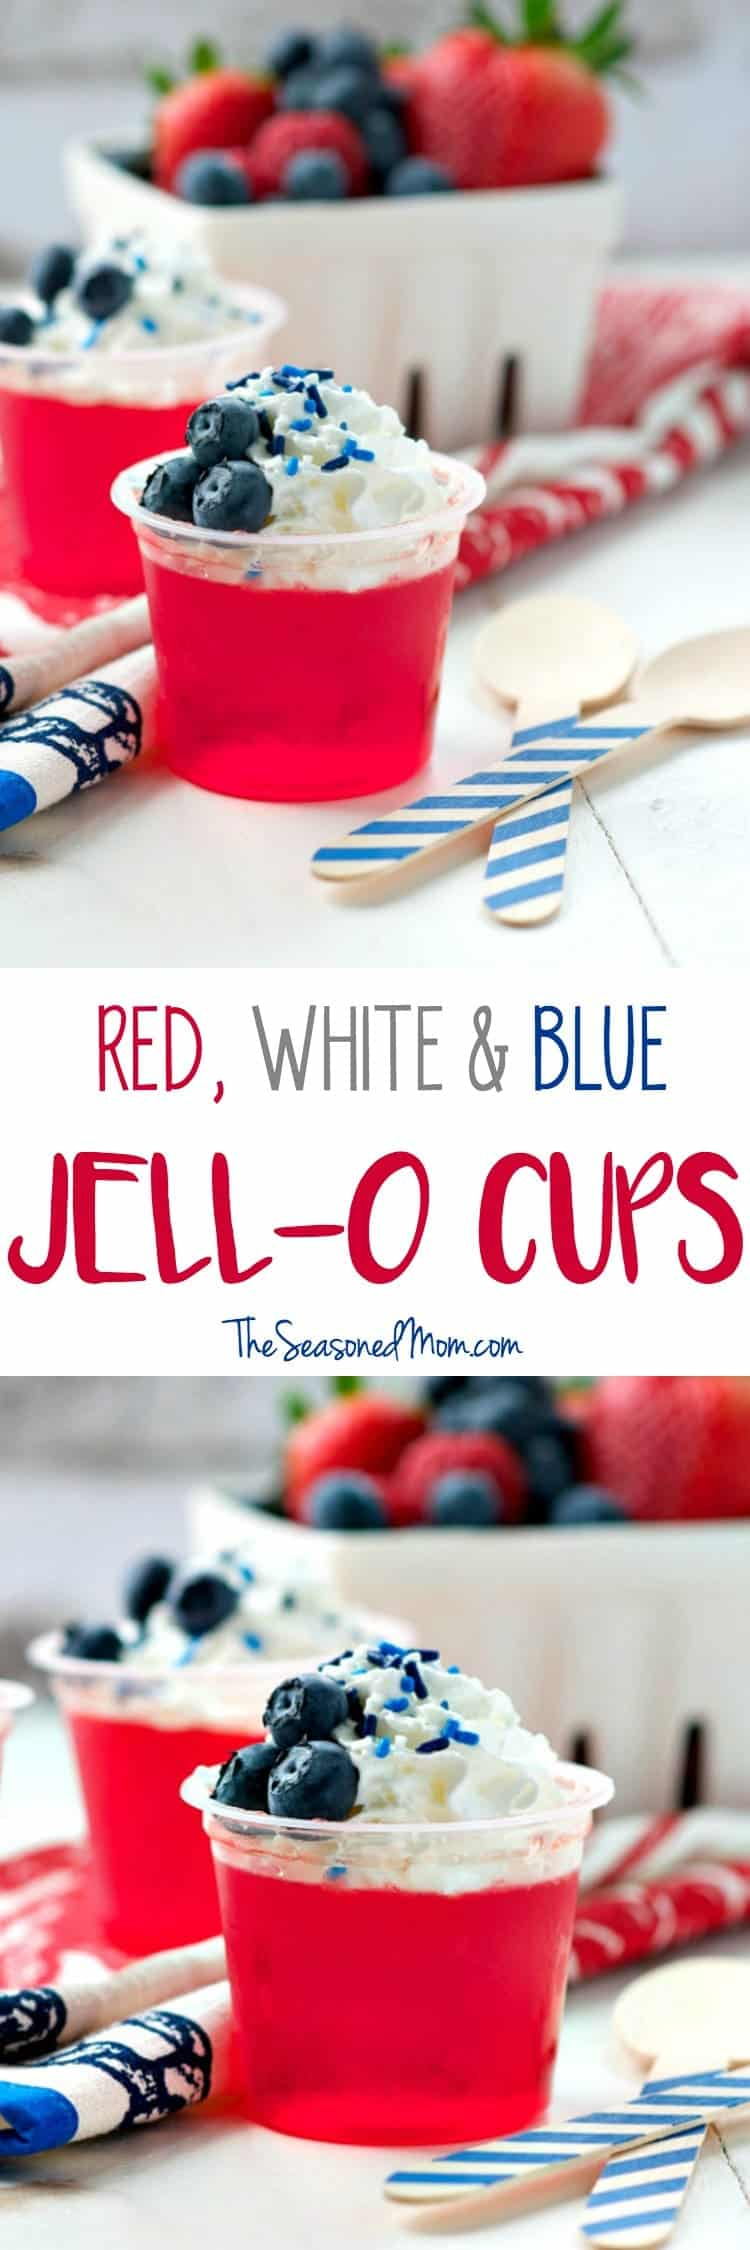 You only need 3 ingredients and less than 1 minute to prepare these easy no-bake Red, White and Blue Jell-O Cups! They are the perfect kid-friendly patriotic snack or dessert for Fourth of July parties and other festive occasions!